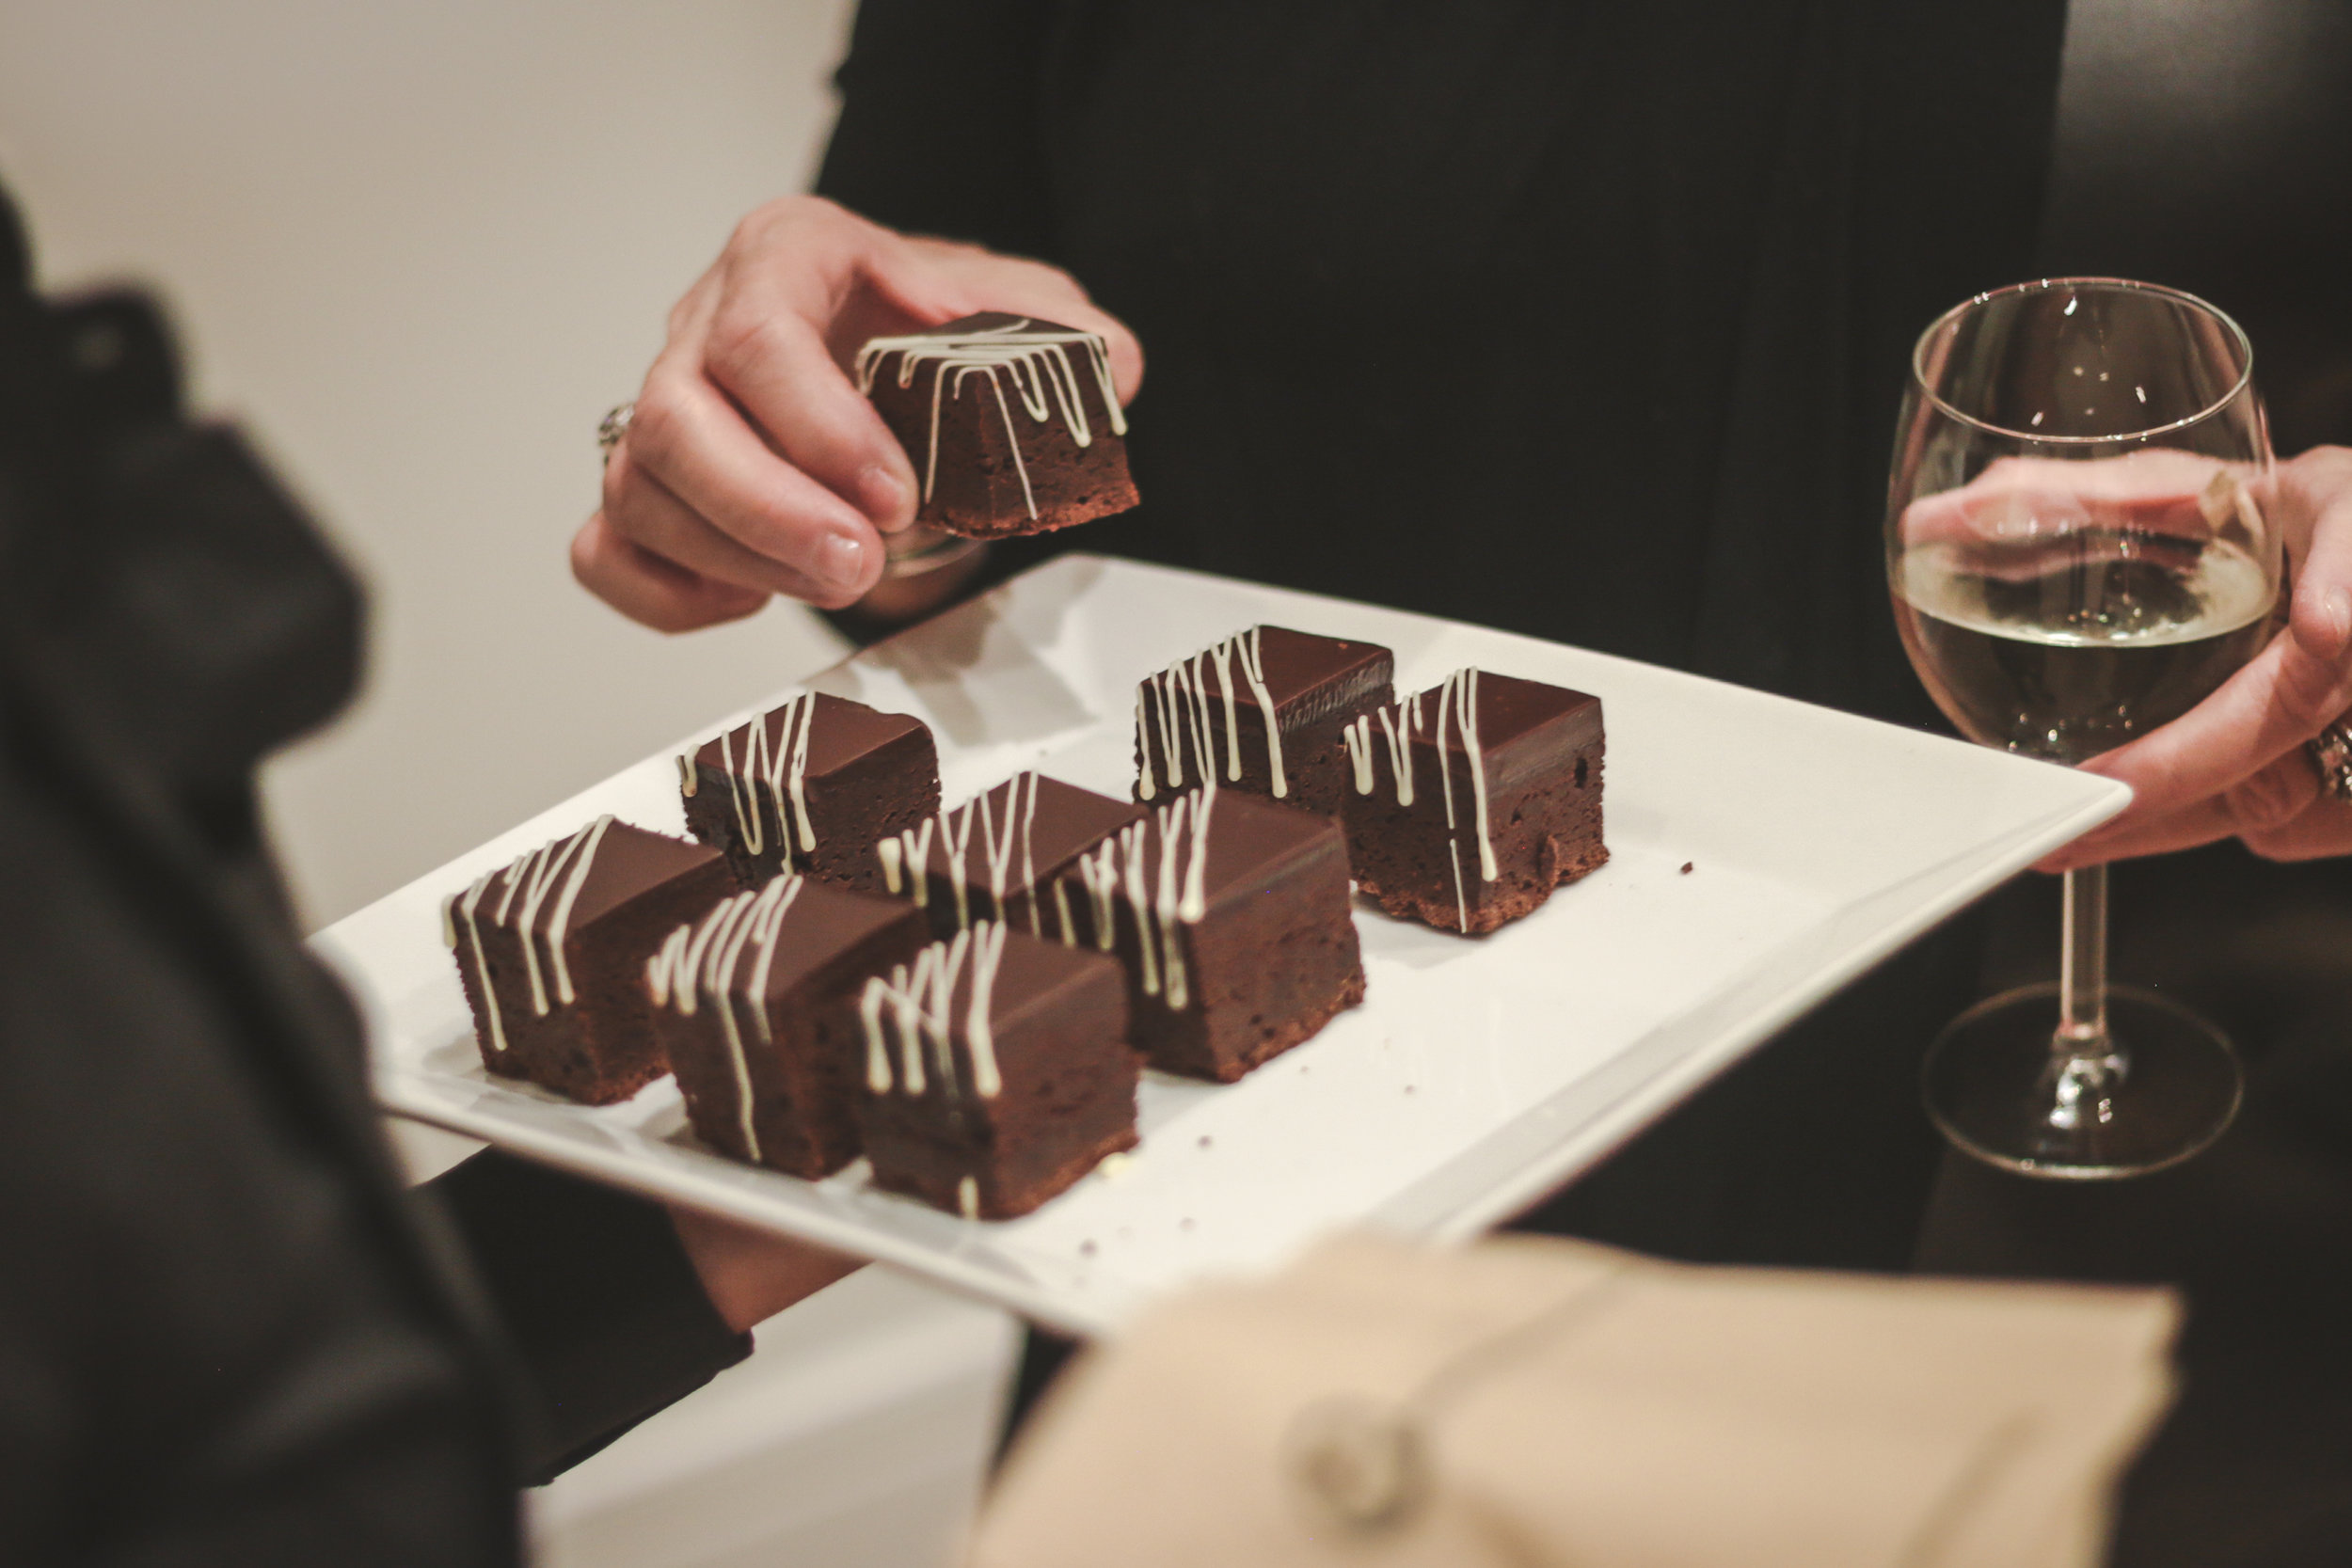 PAVIA's dark chocolate brownie's served at a catering